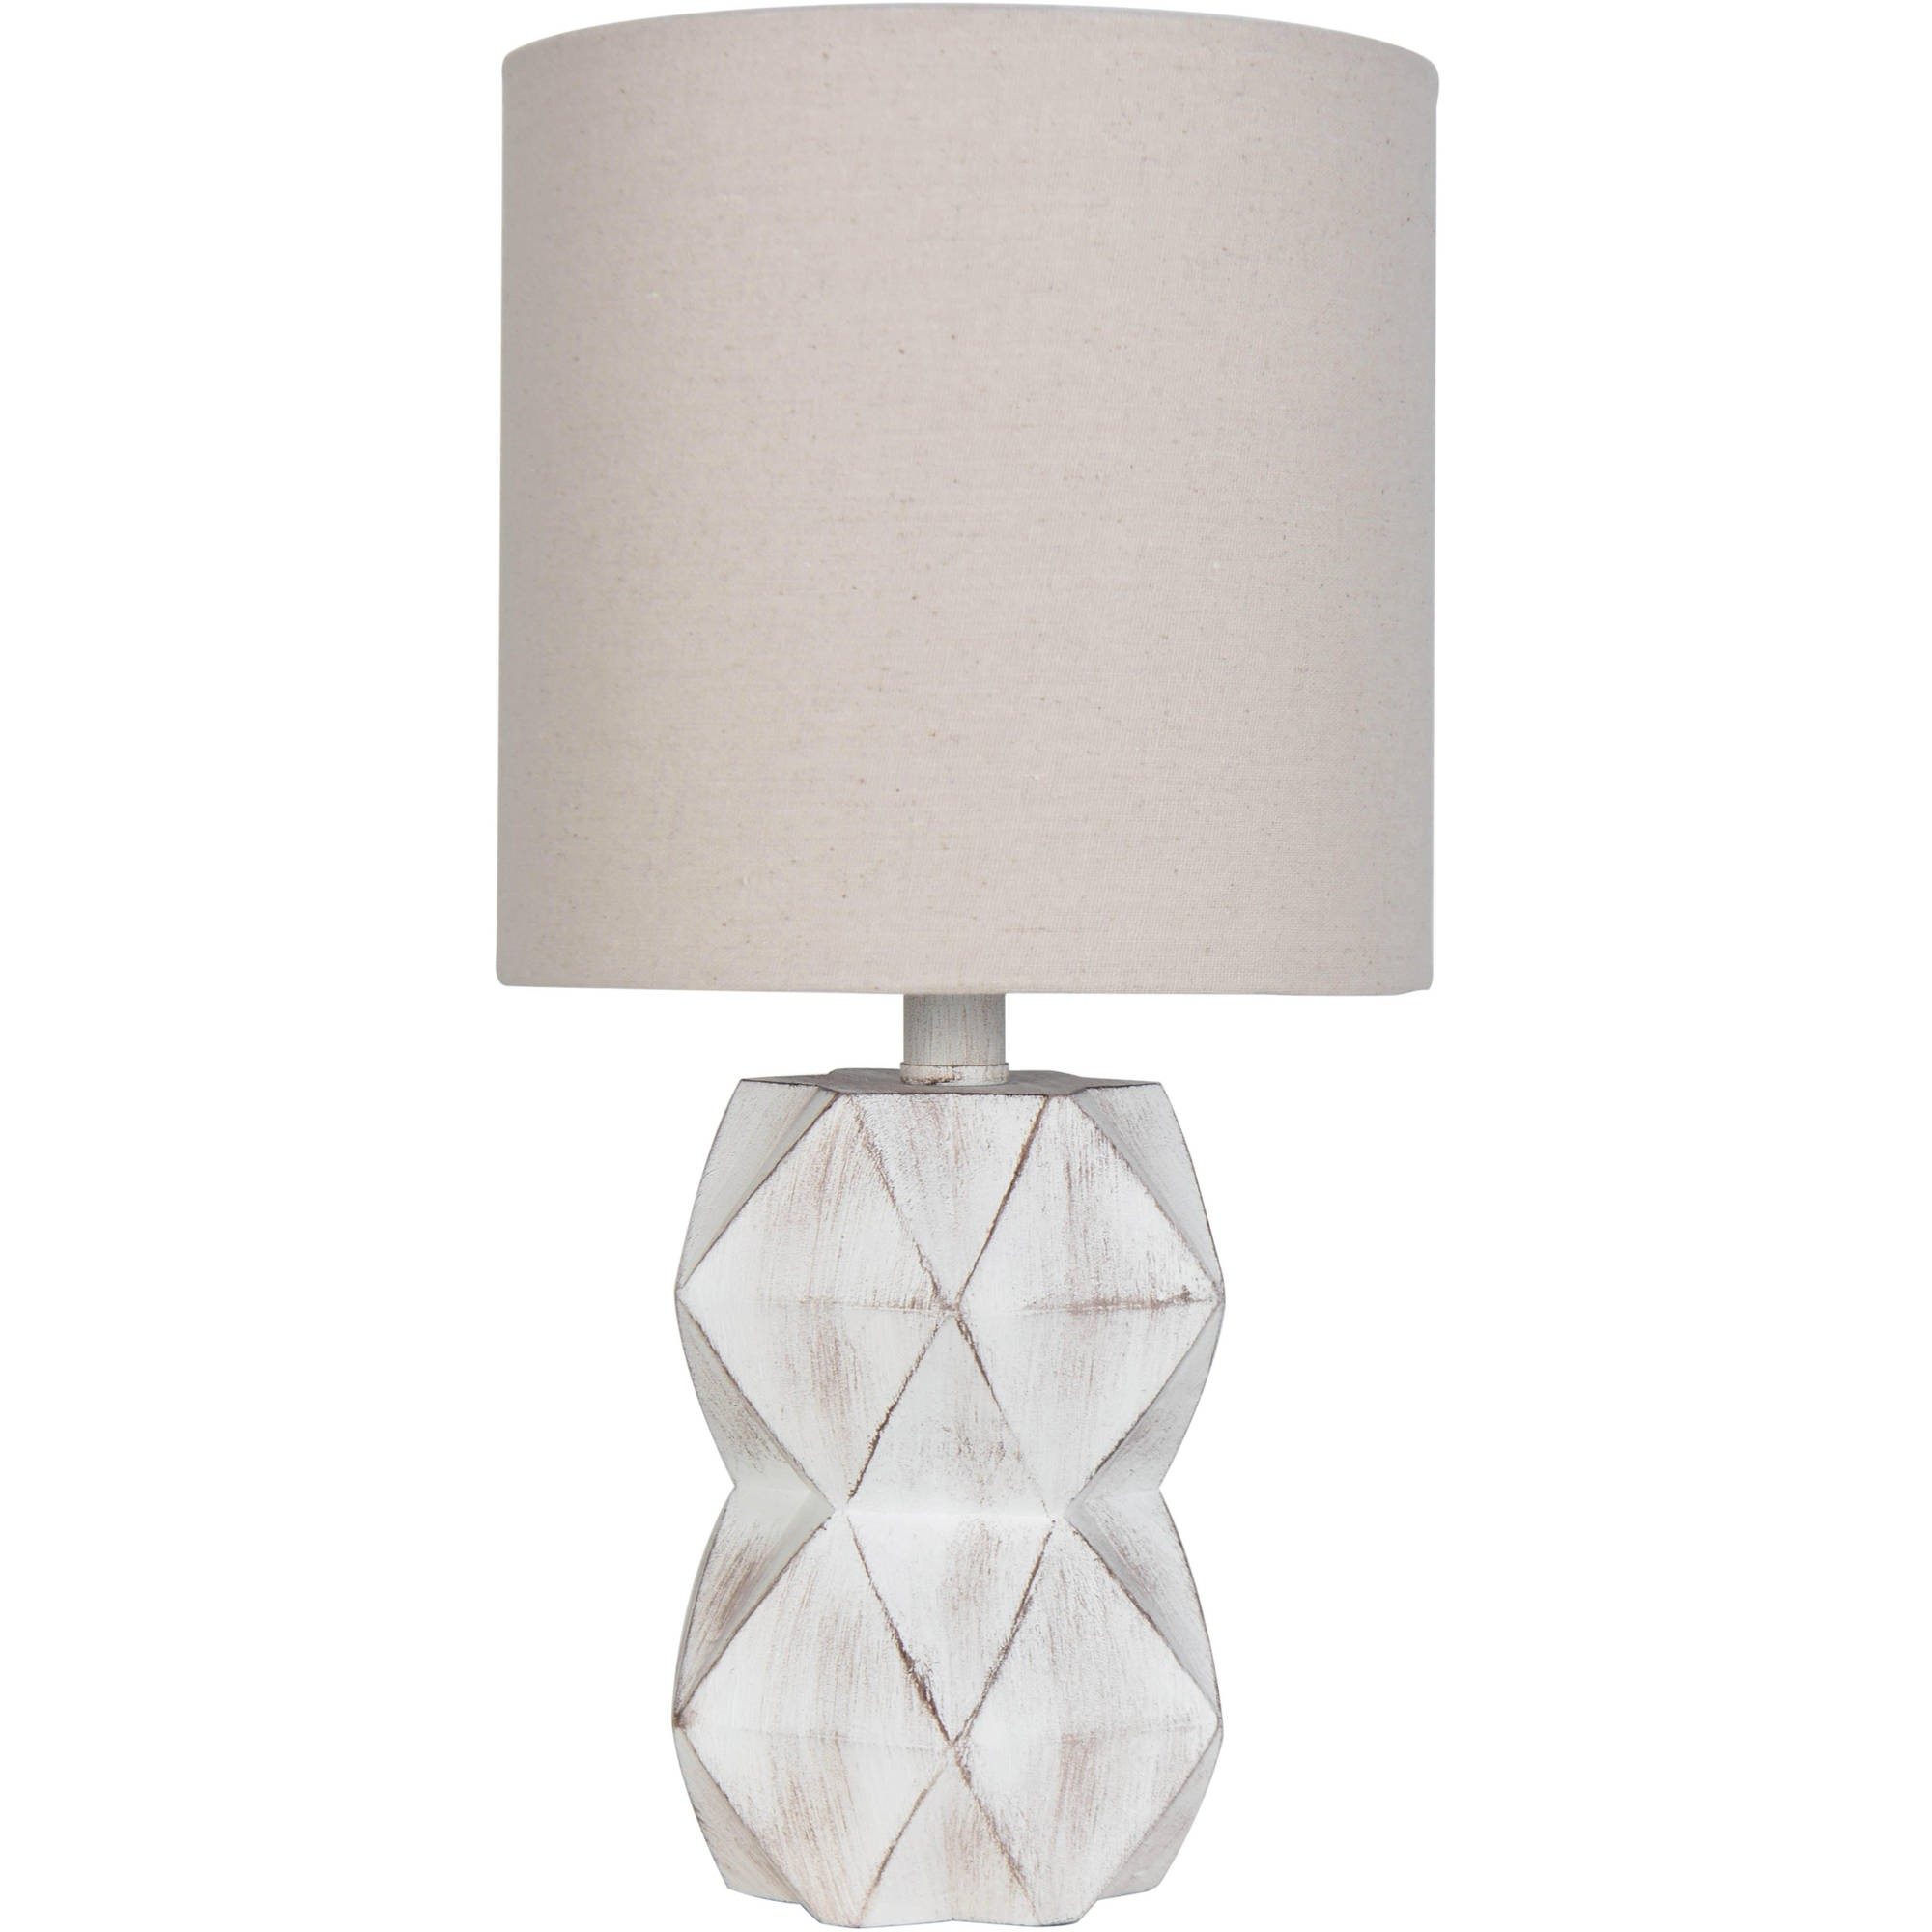 better homes and gardens lamps. Better Homes And Gardens White Wash Faceted Faux Wood Table Lamp Lamps